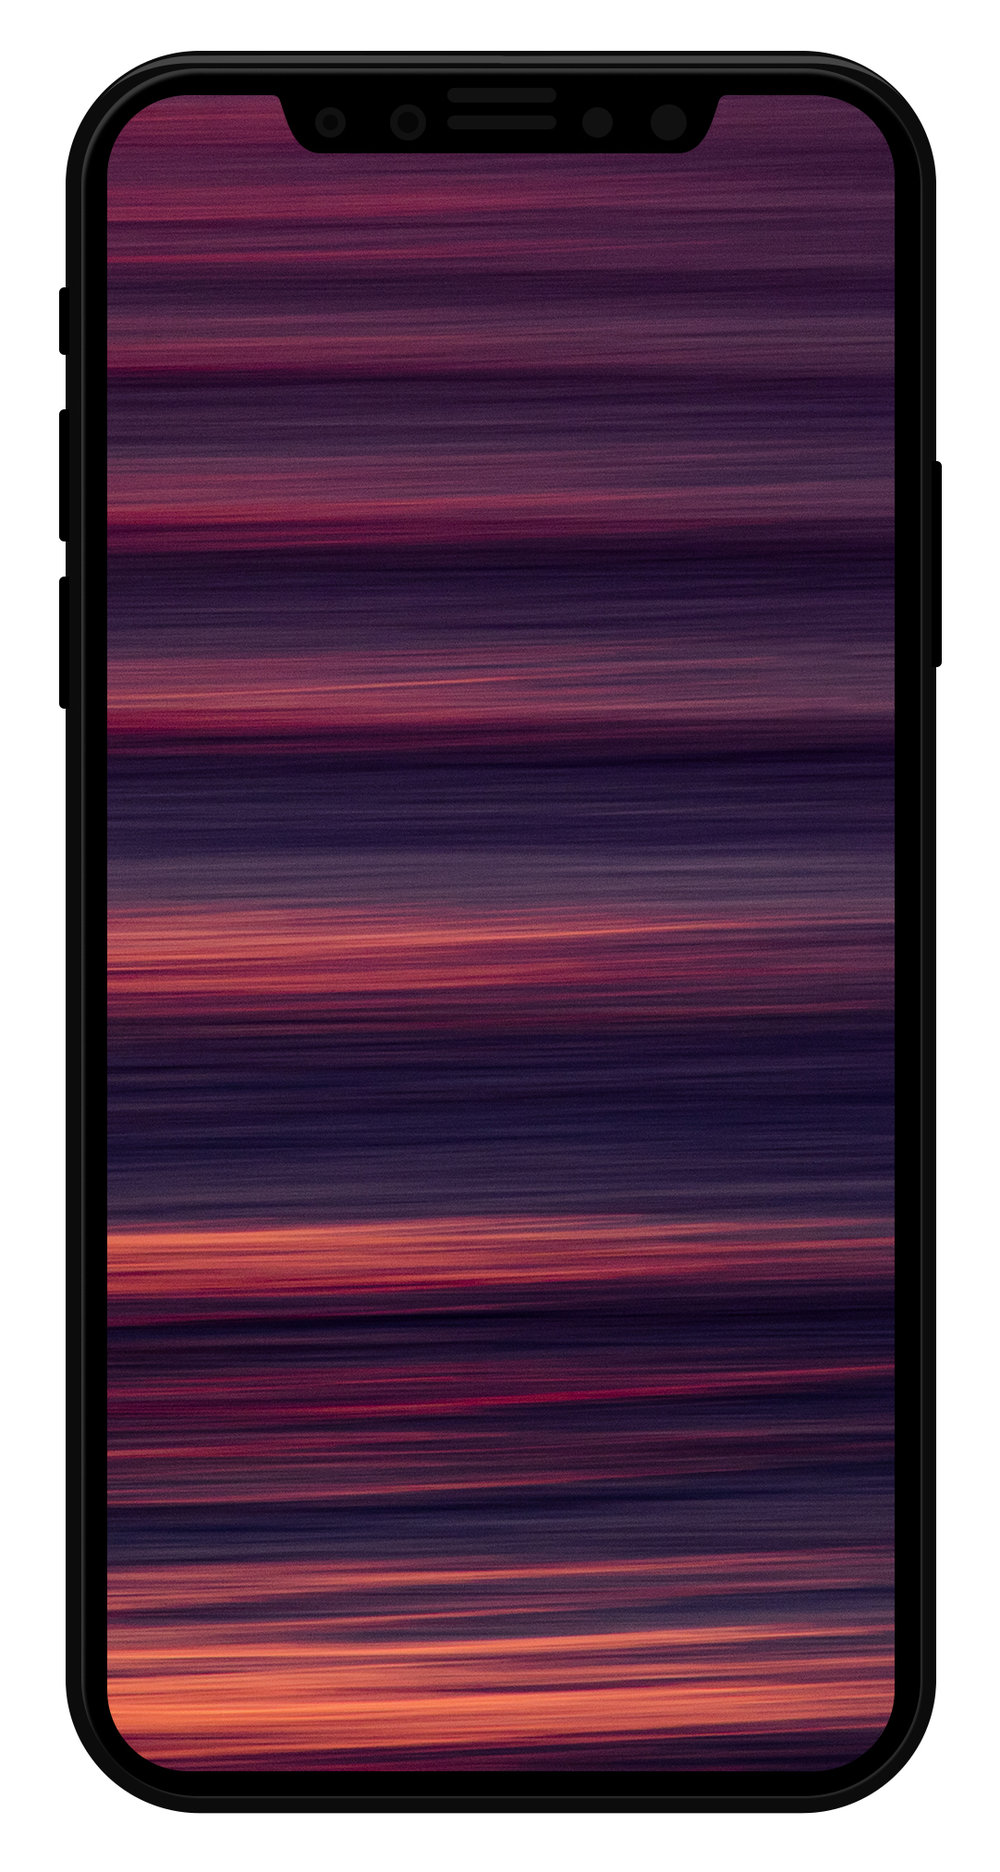 iphone-8-mockup-downloadabkleG.jpg